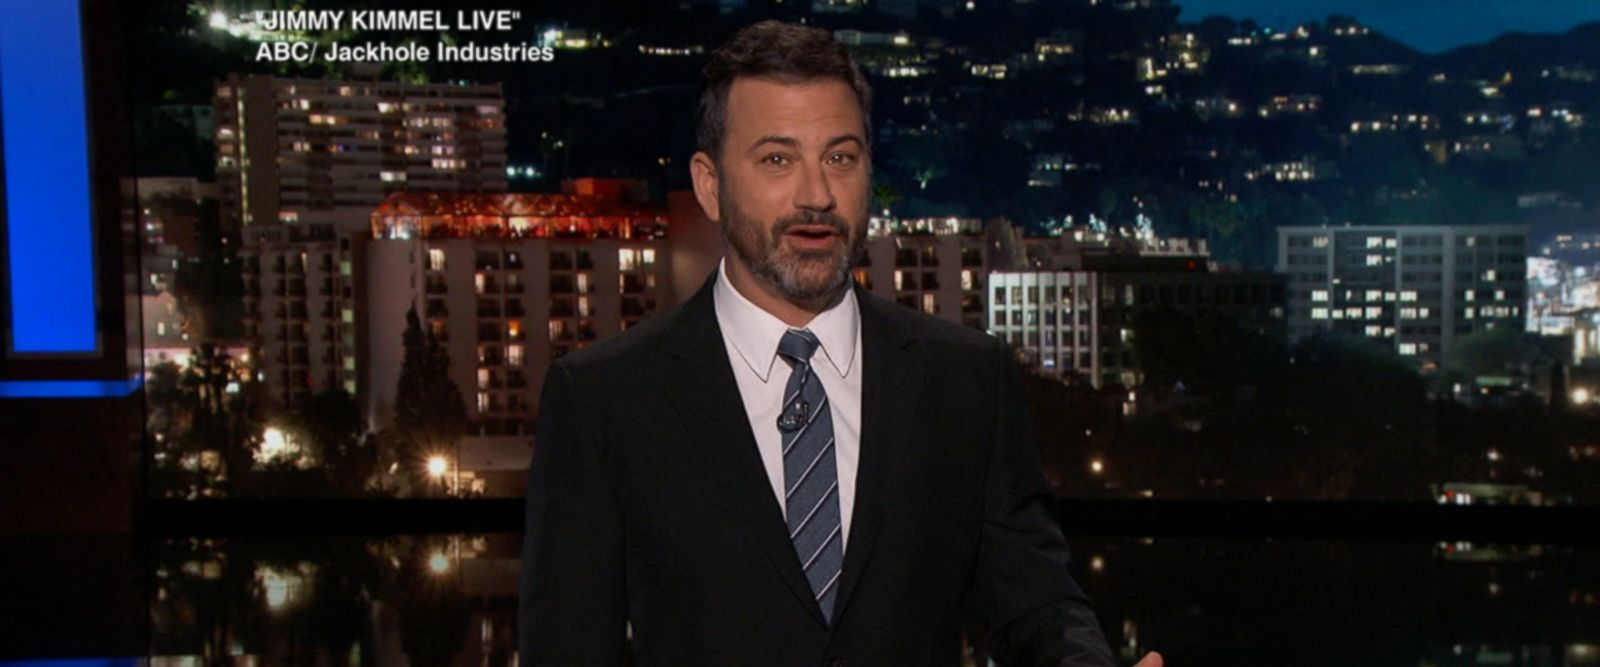 VIDEO: Jimmy Kimmel slams senator for lying about new health care bill.